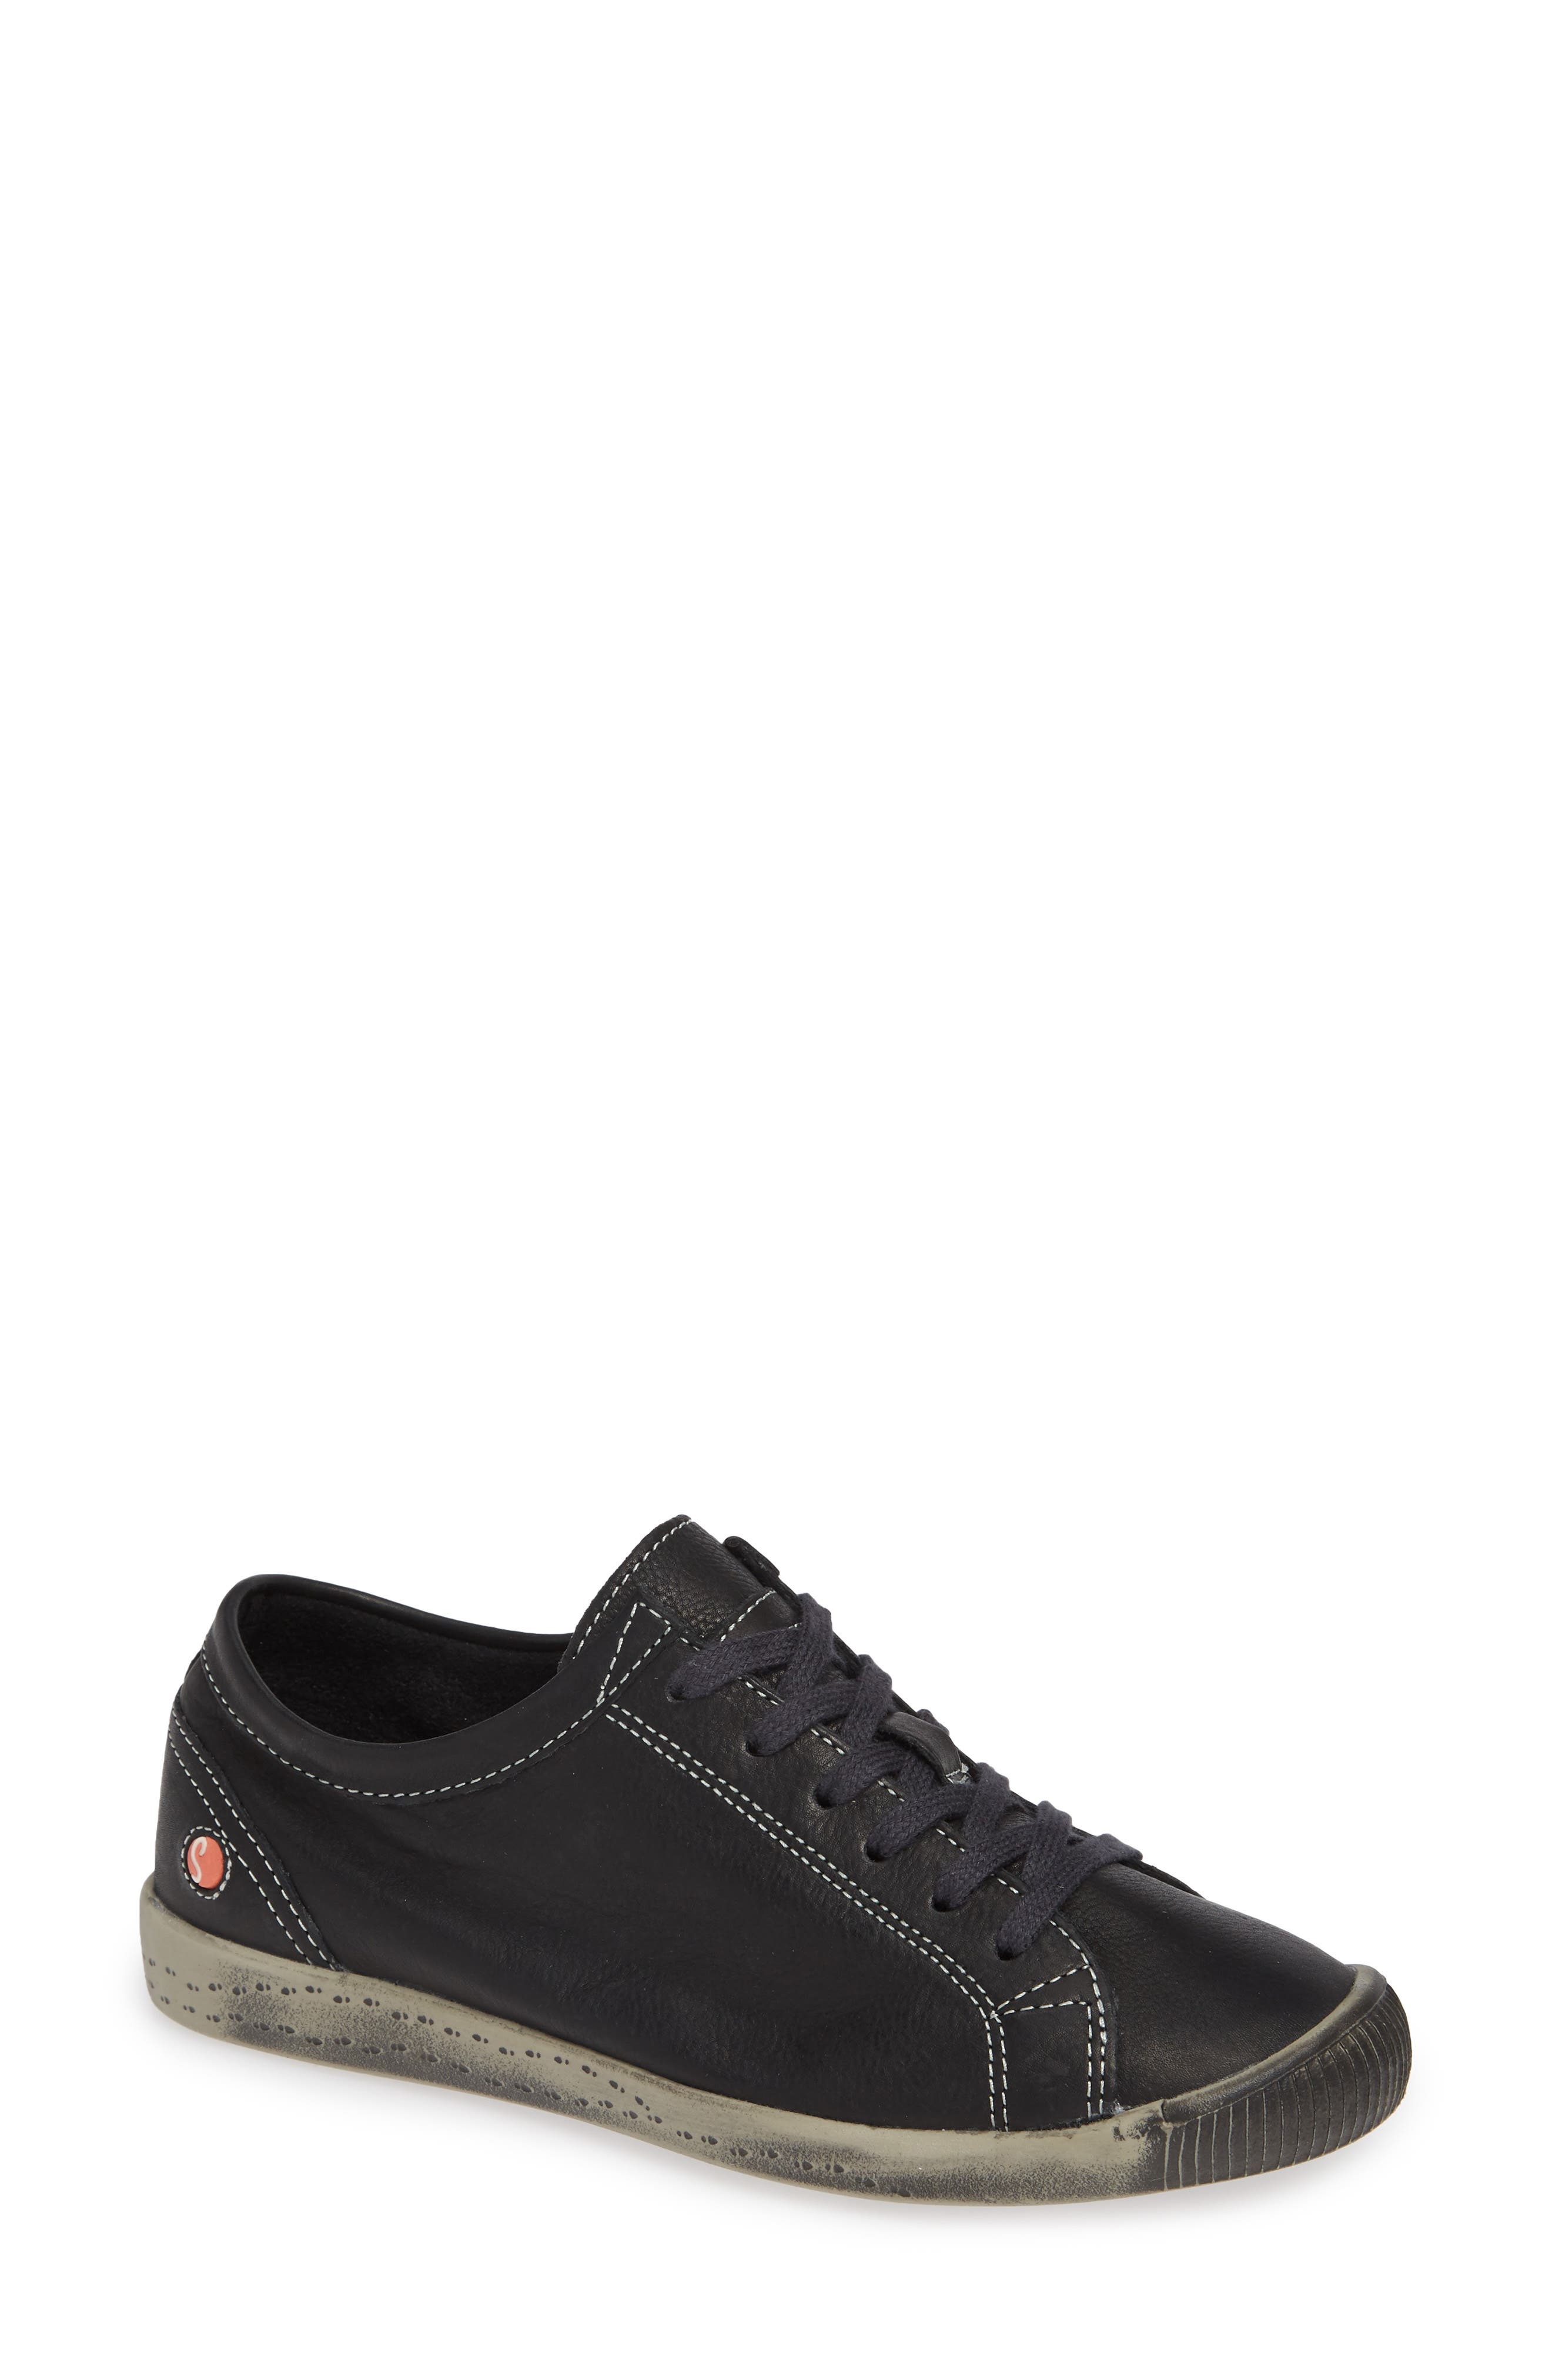 Softinos By Fly London Isla Distressed Sneaker - Black